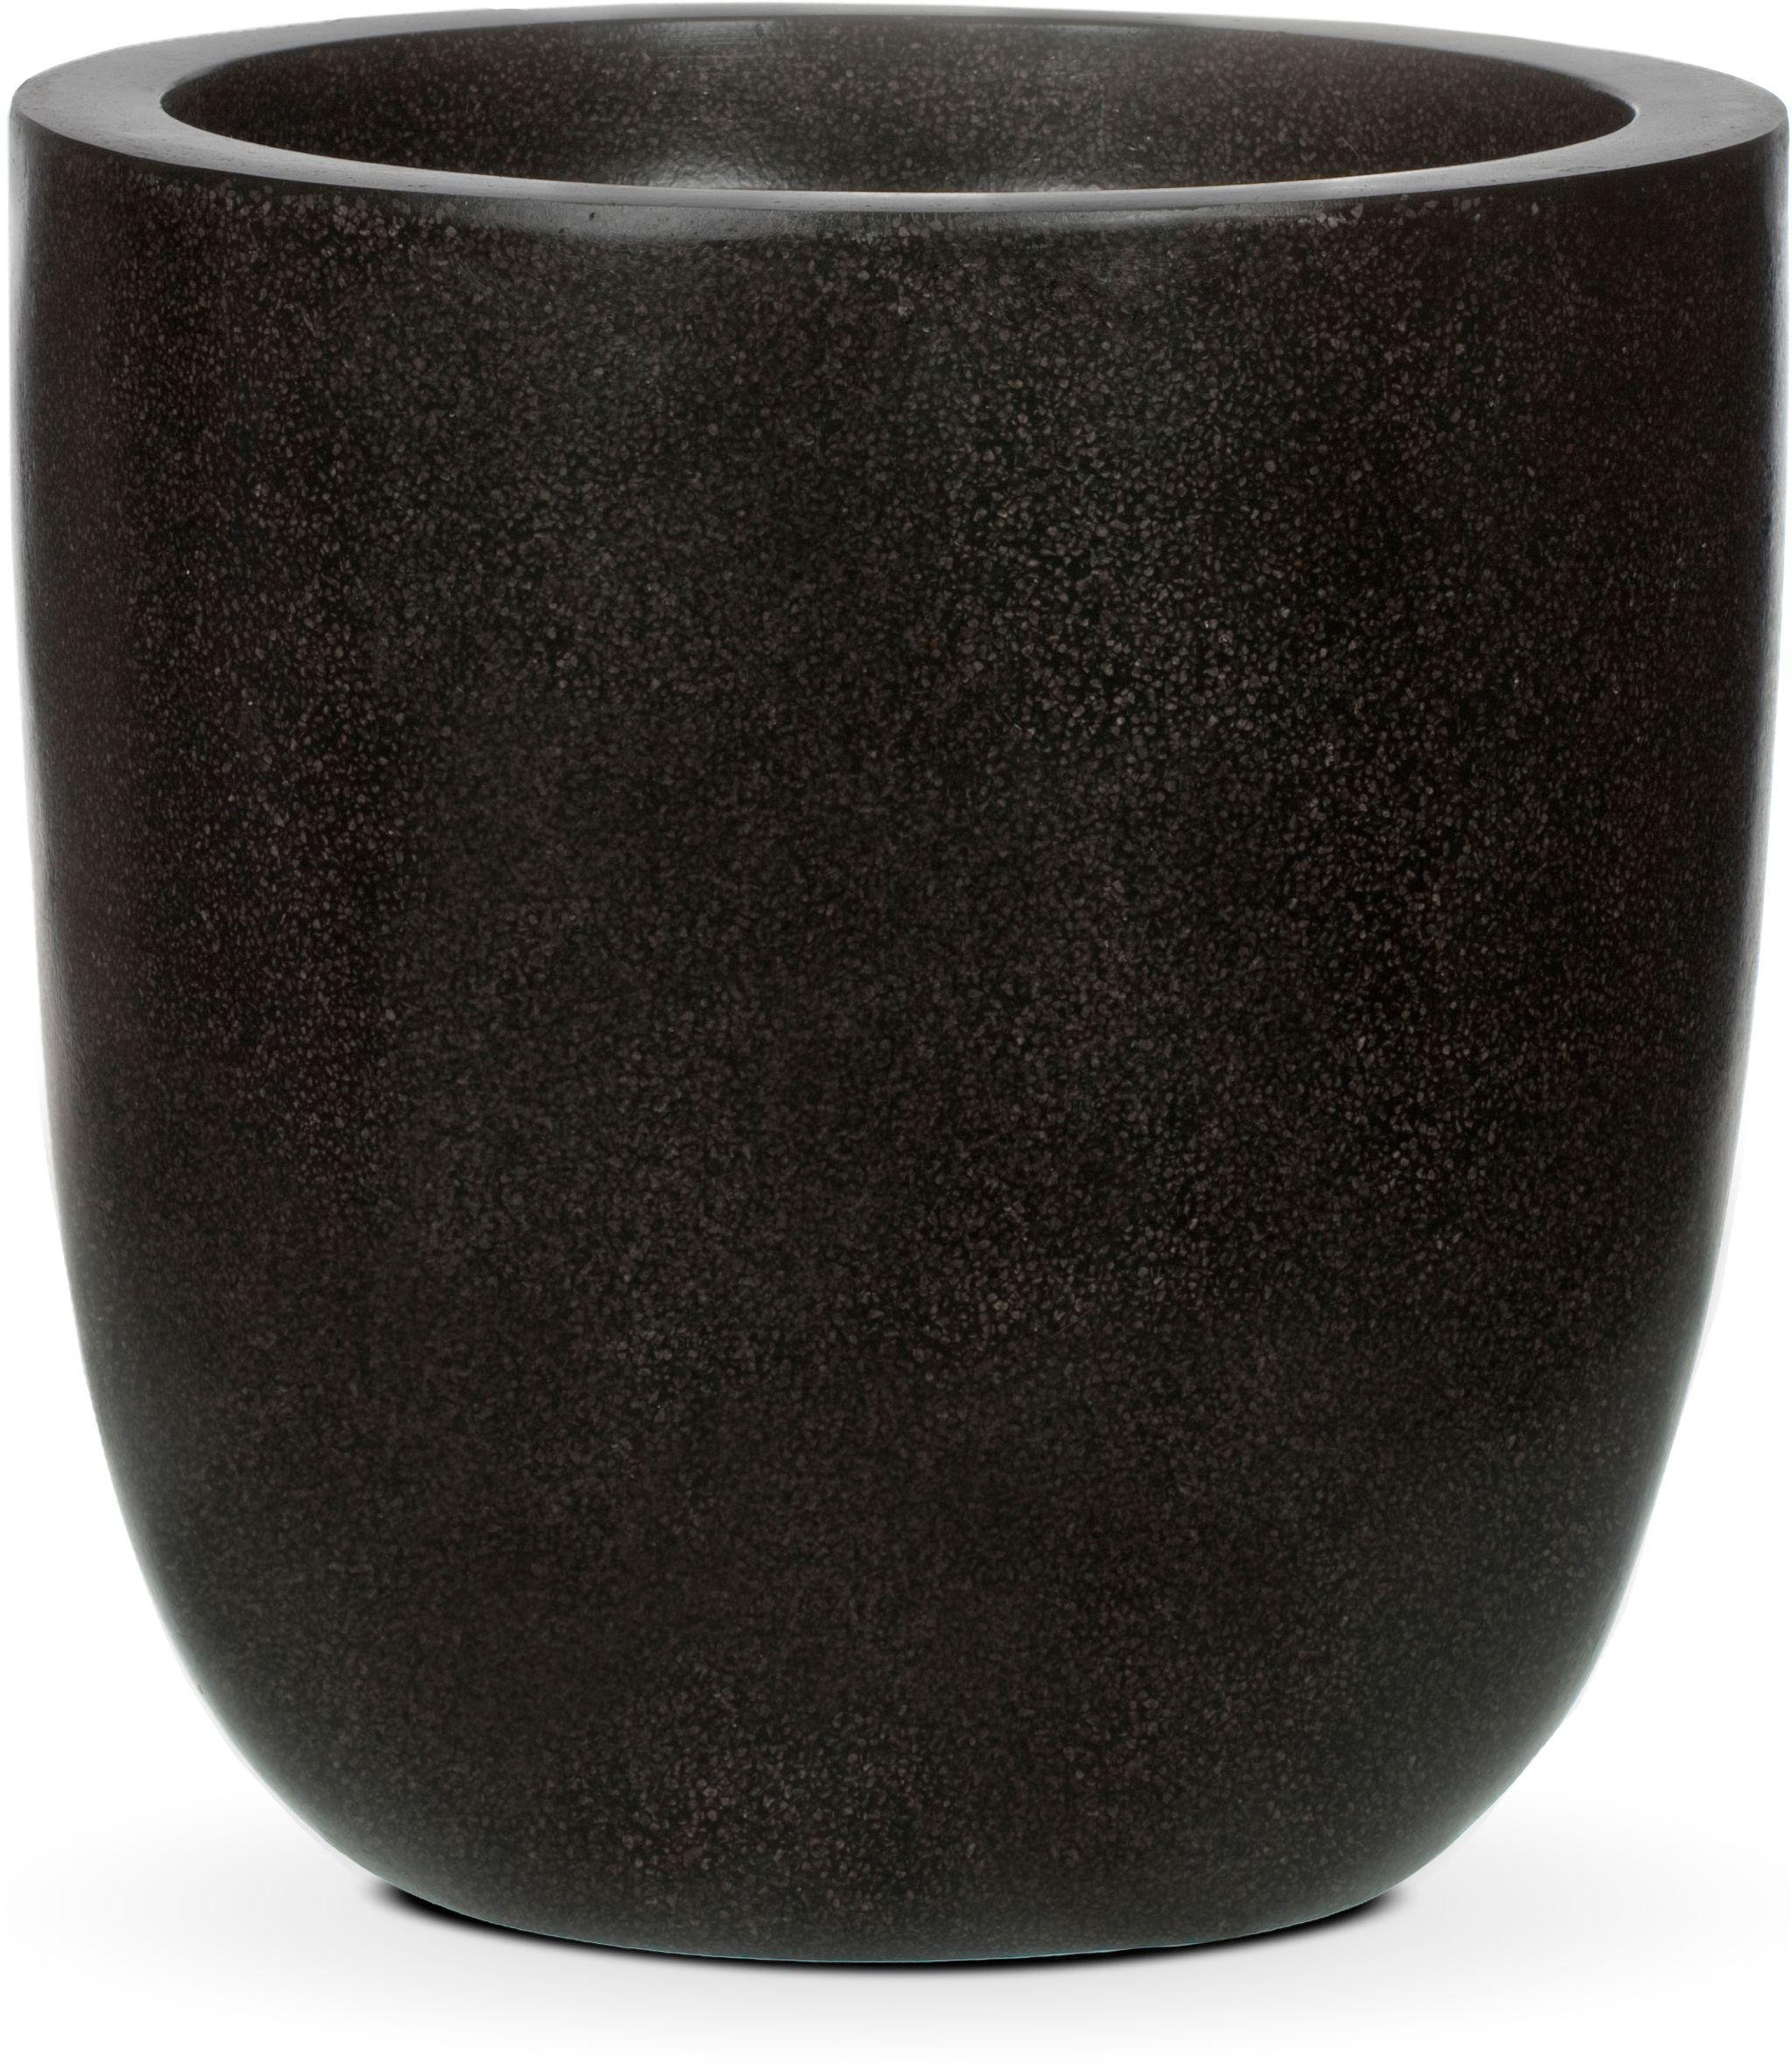 Image of Capi Lux Black Planter Egg - 34 x 34cm.